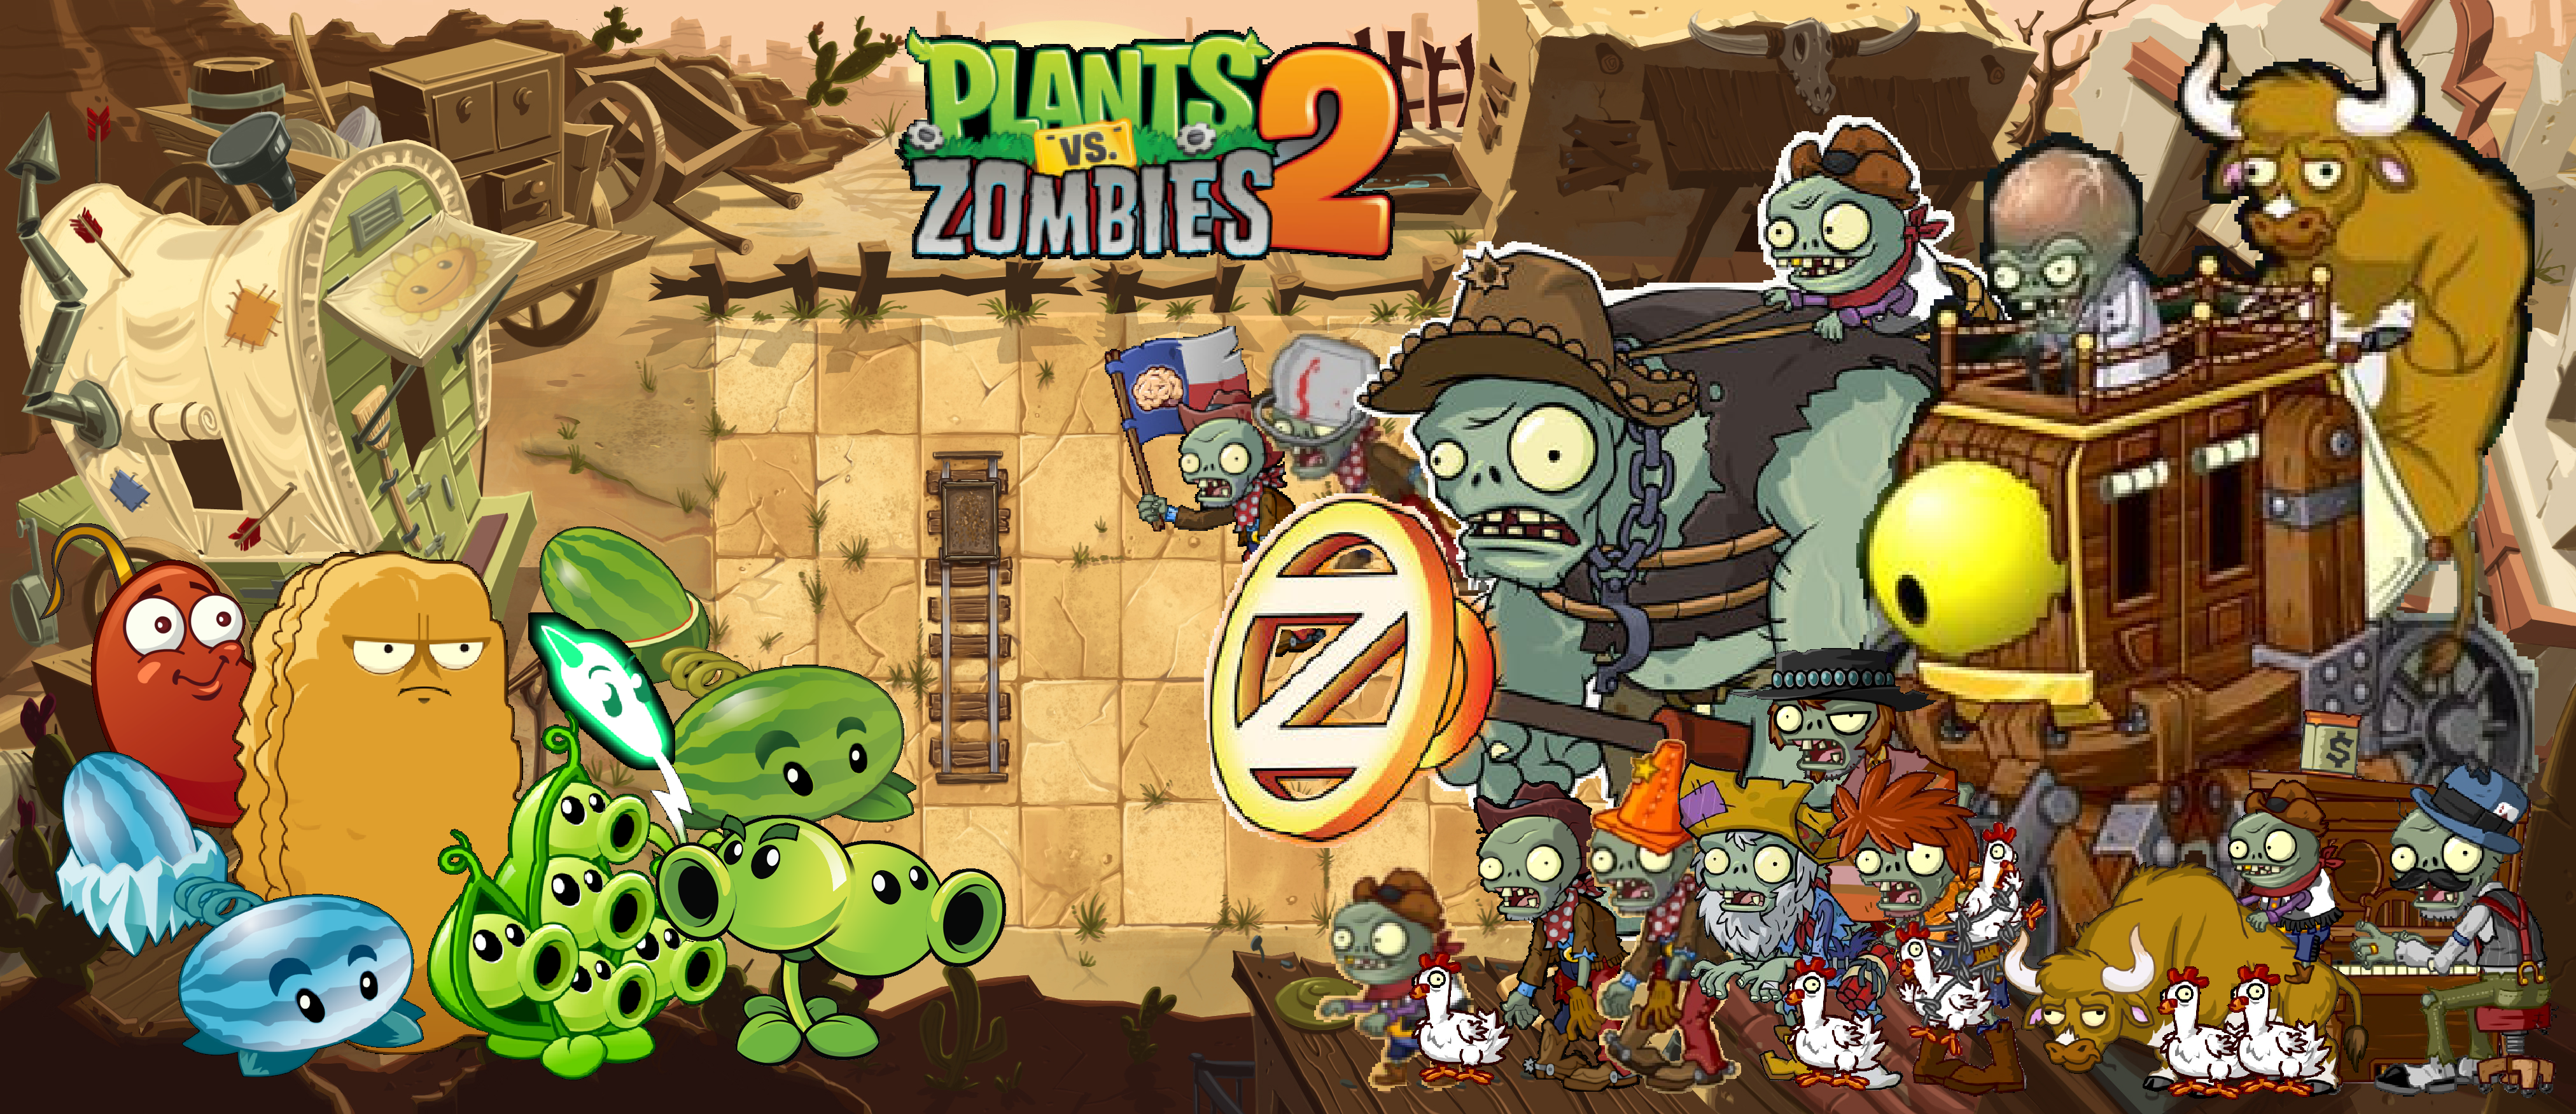 Plants vs zombies 2 wild west wallpaper by photographerferd on photographerferd plants vs zombies 2 wild west wallpaper by photographerferd voltagebd Gallery